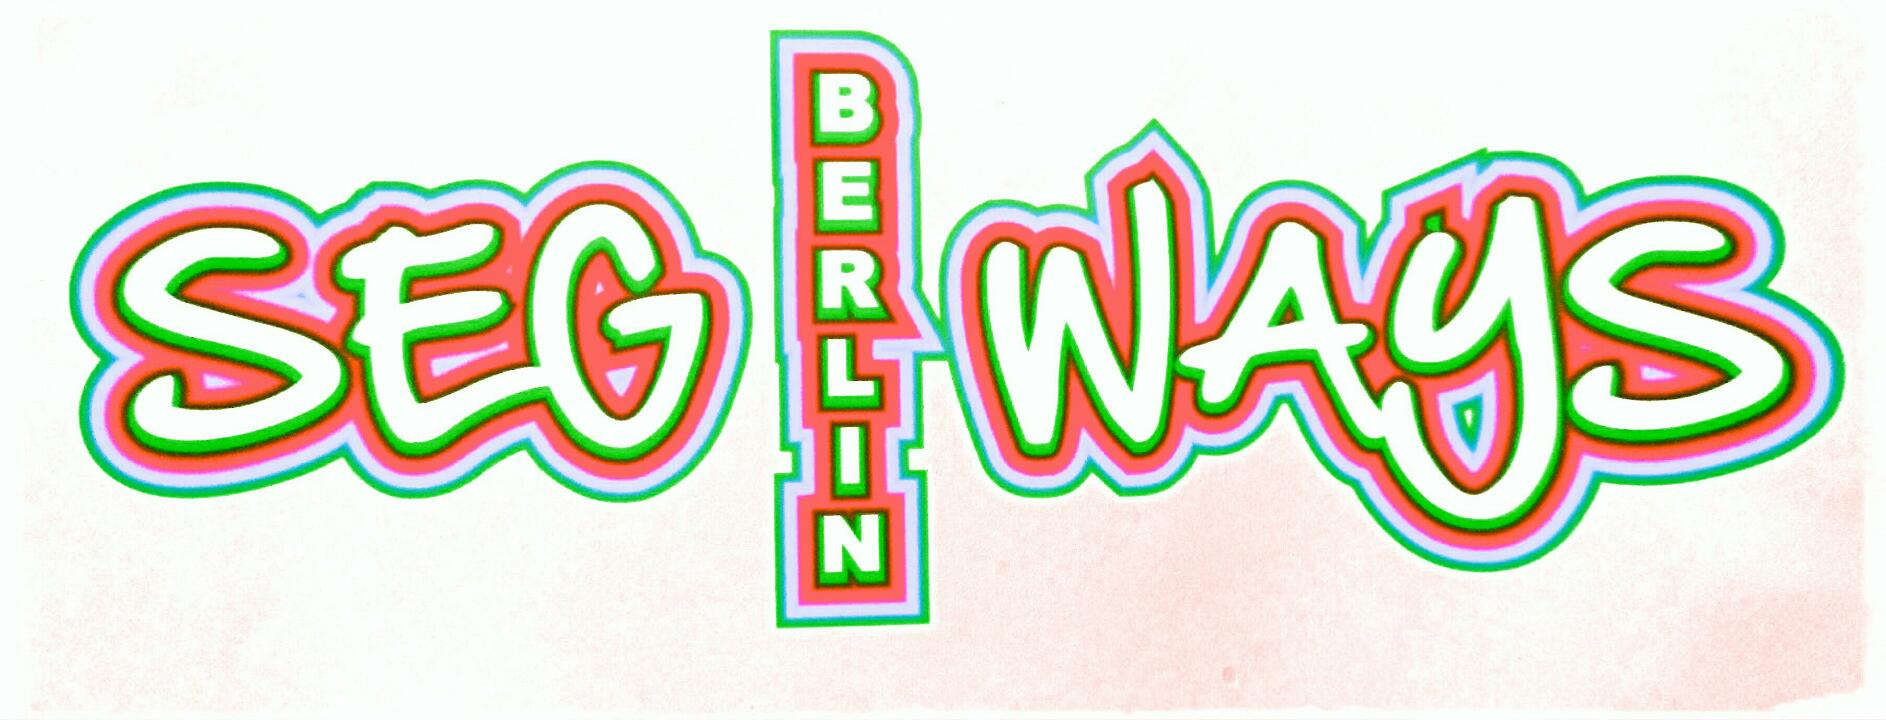 seg⭐️berlin⭐️ways | S E G W A Y Touren Berlin East & West ✅